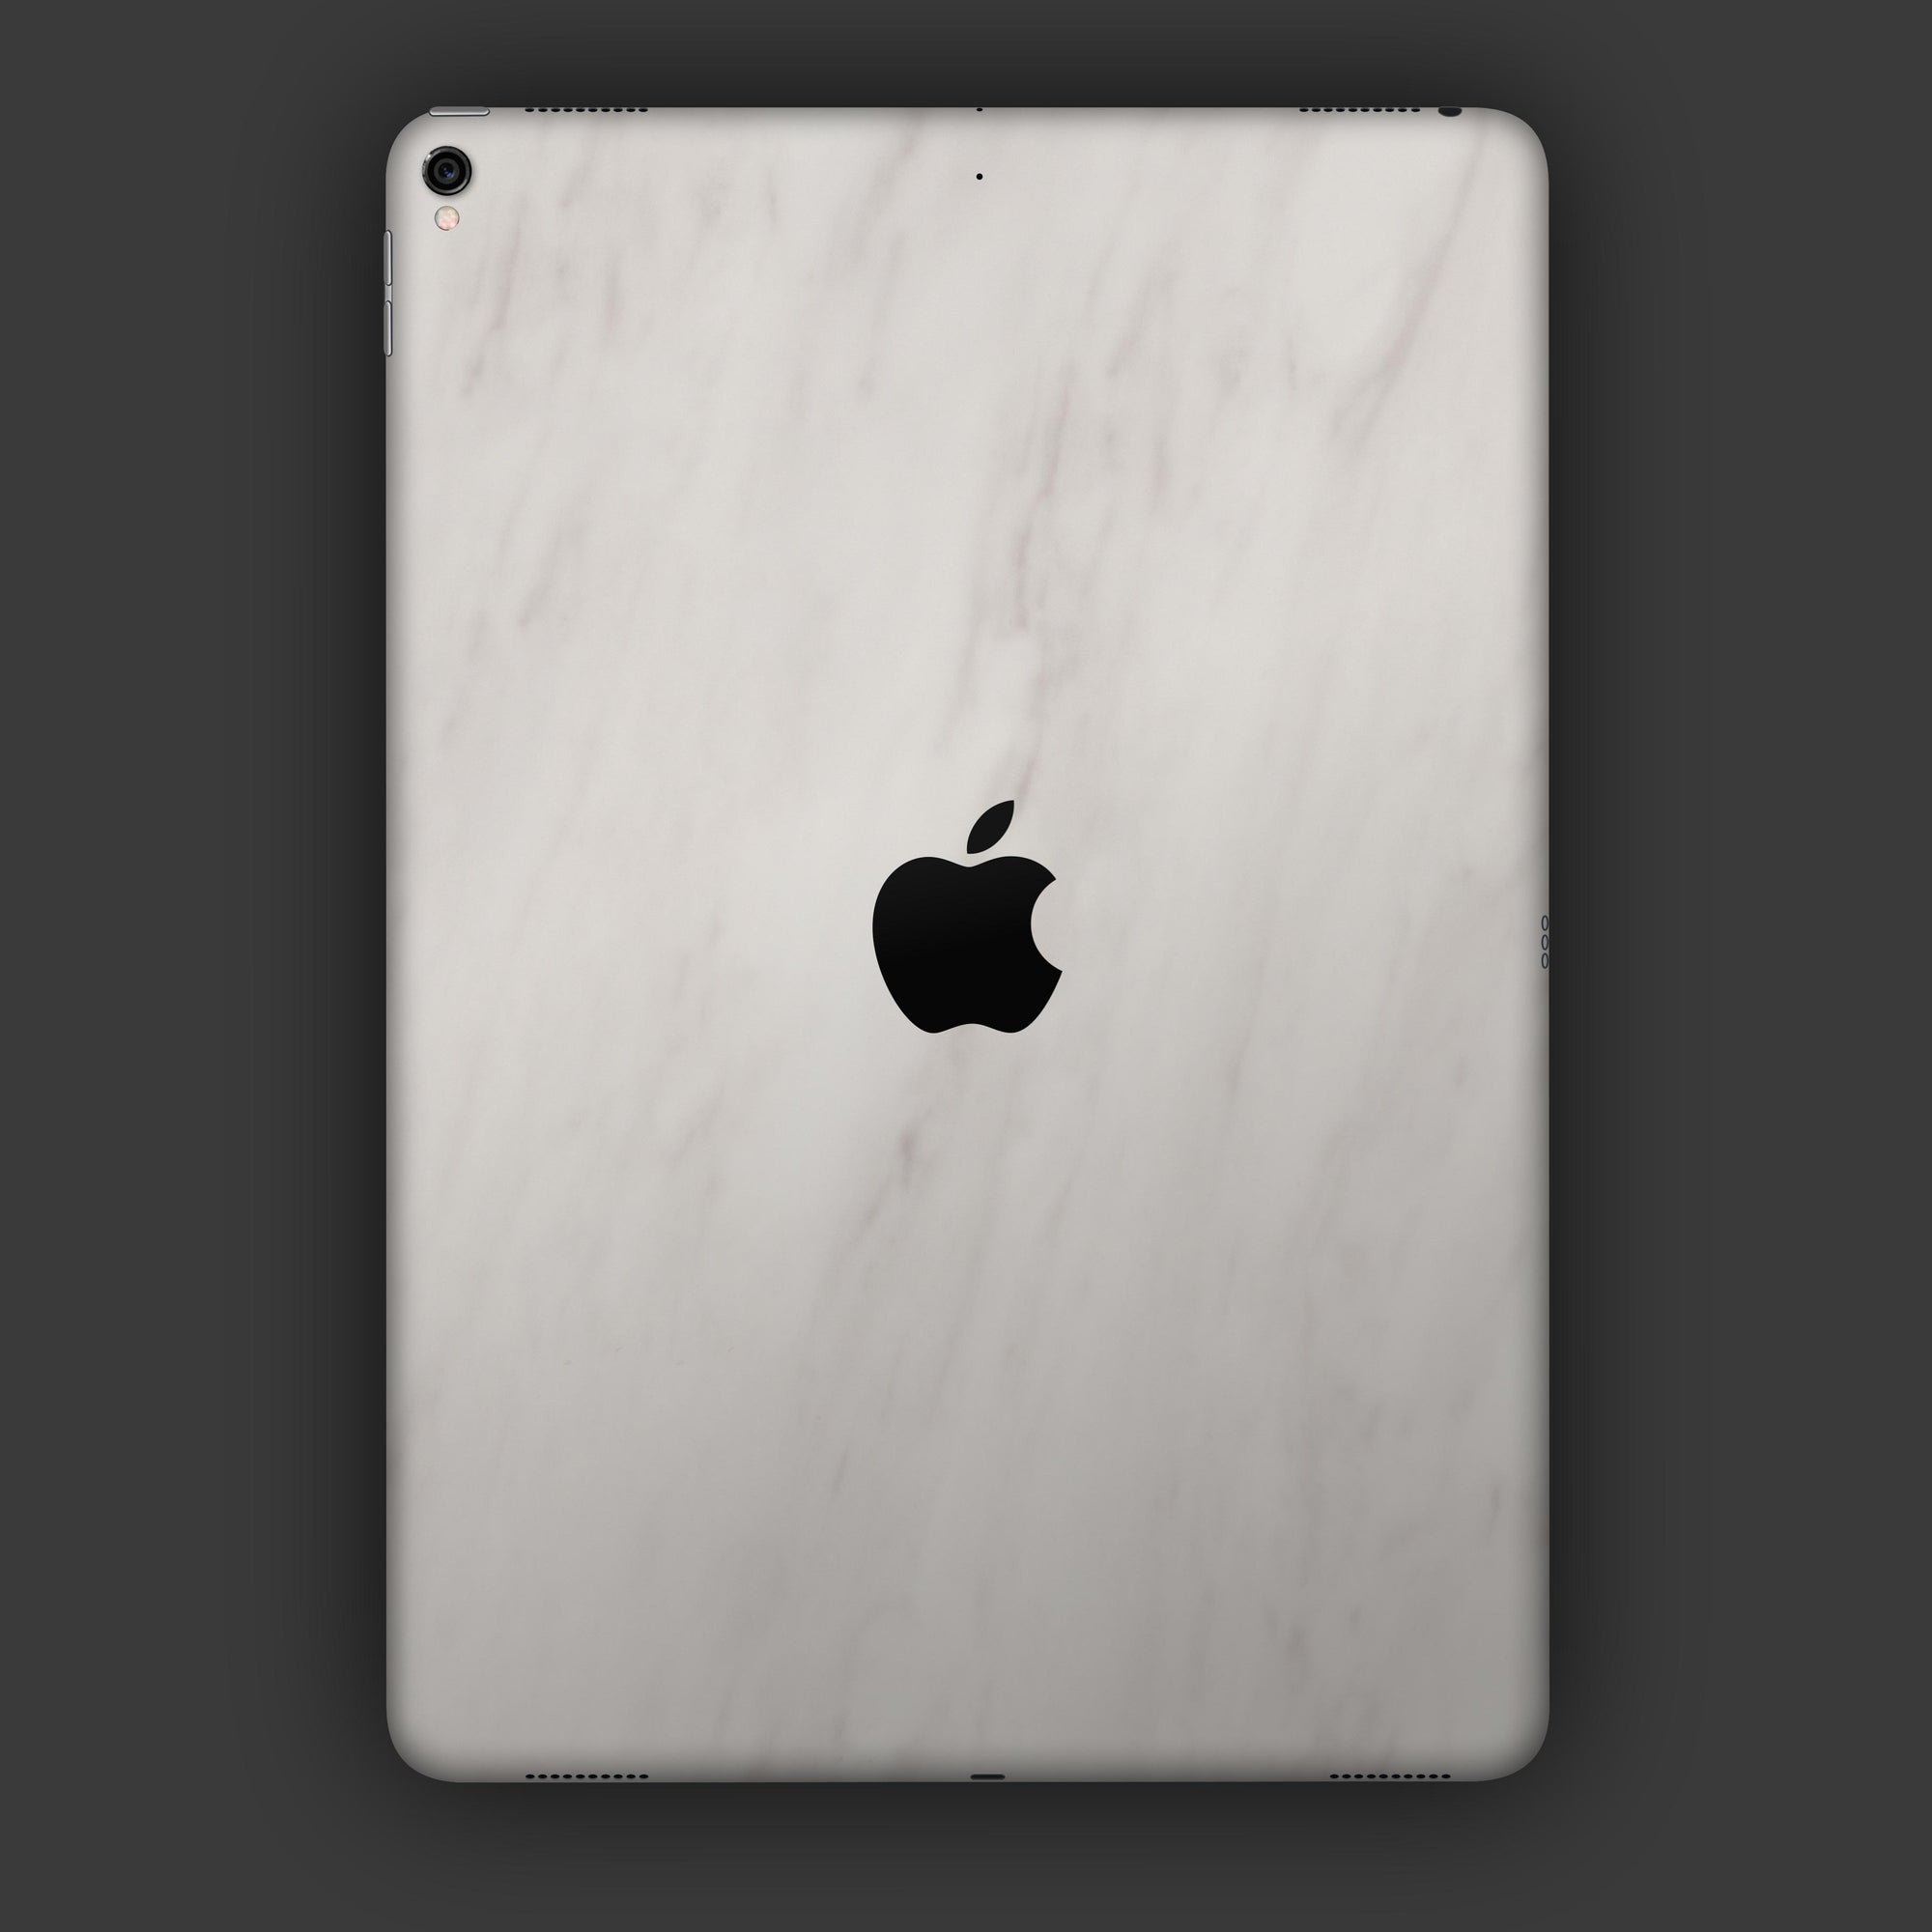 iPad-Pro-12-9-2017-mit-Apple-Logo-in-Marmor